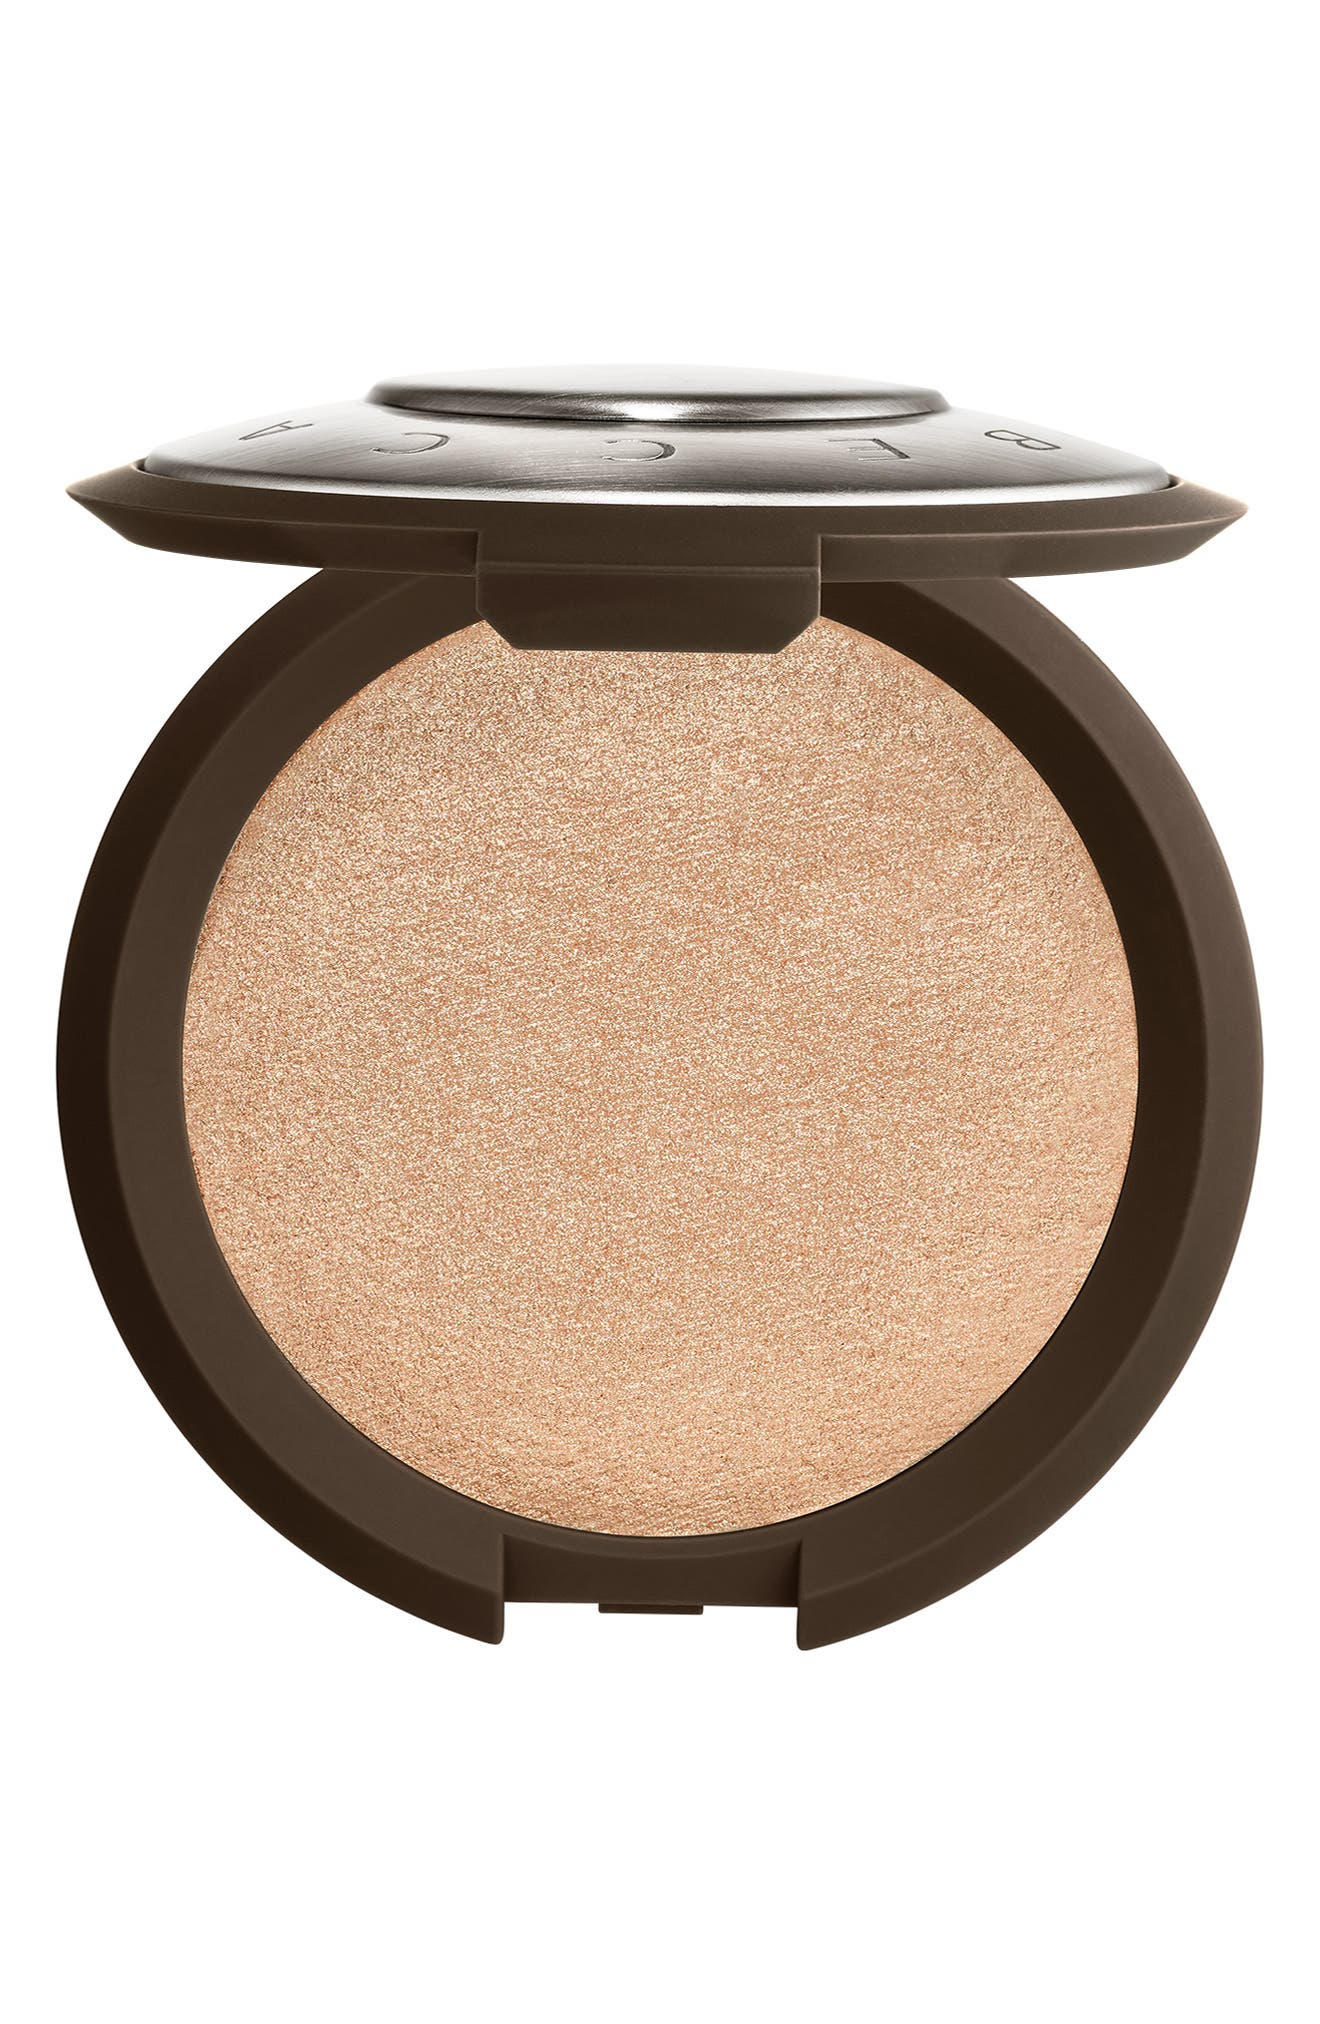 Image of BECCA Cosmetics Shimmering Skin Perfector Pressed Highlighter